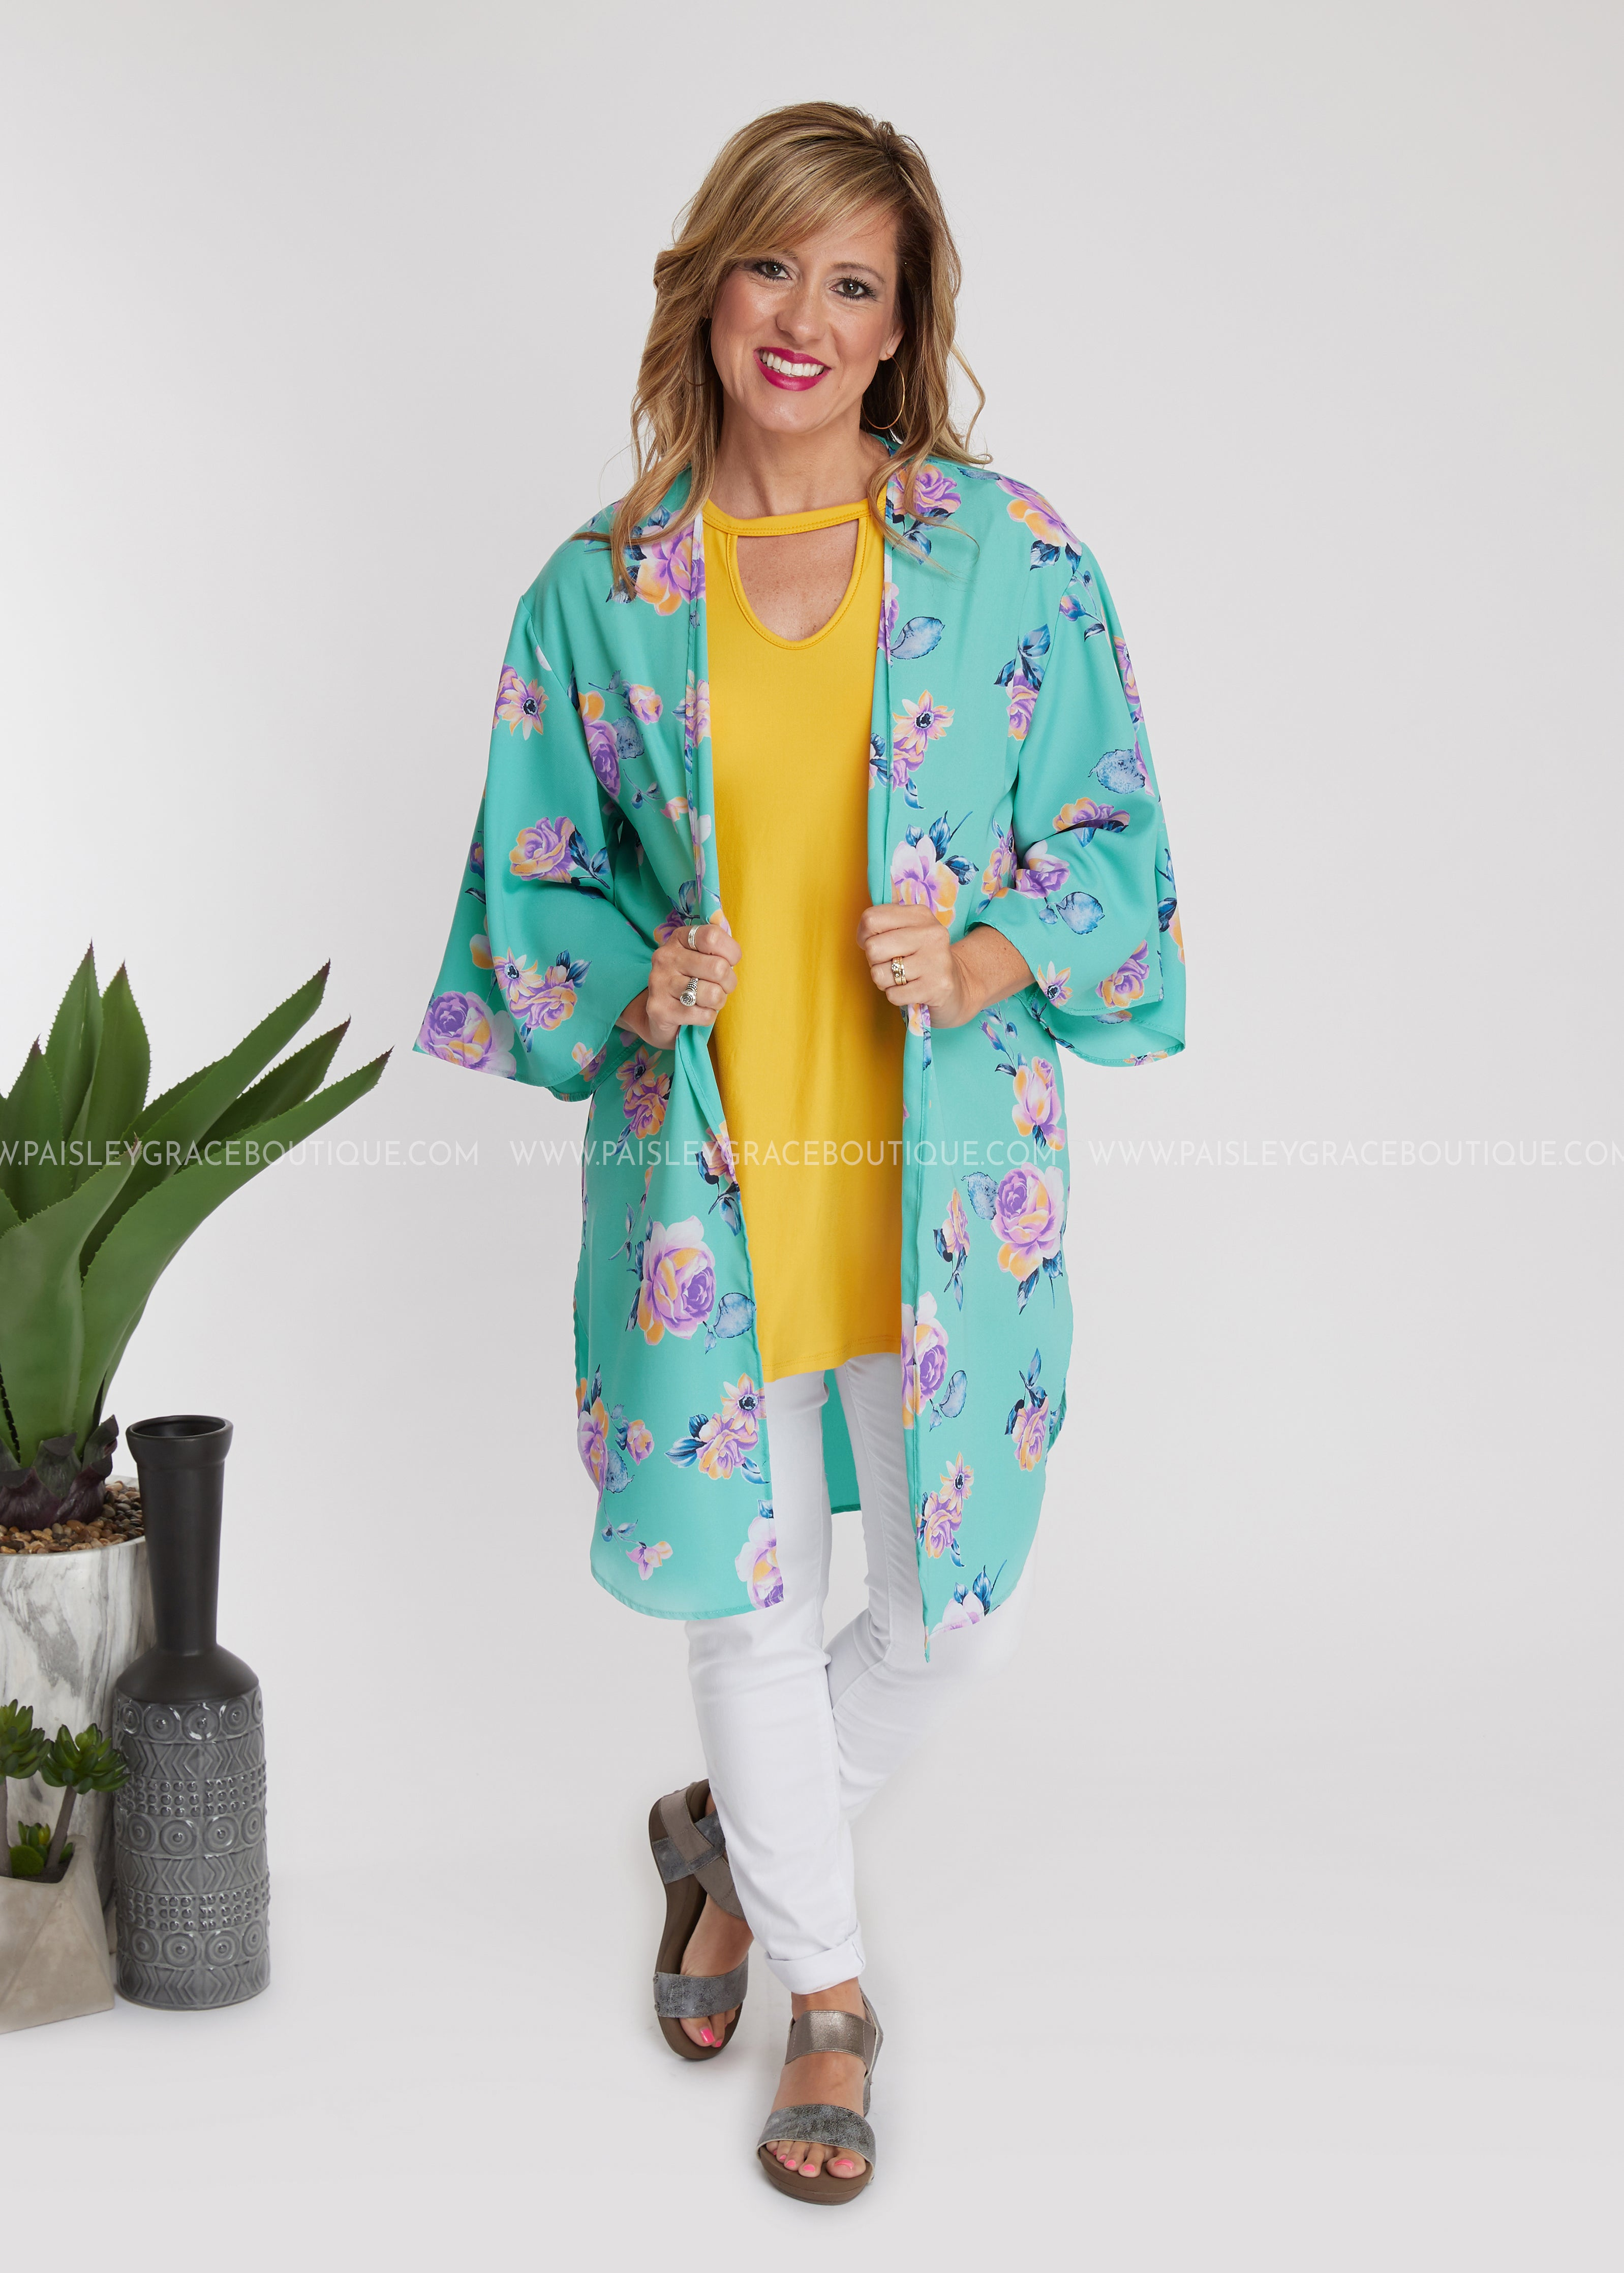 Gone For Summer Kimono - FINAL SALE